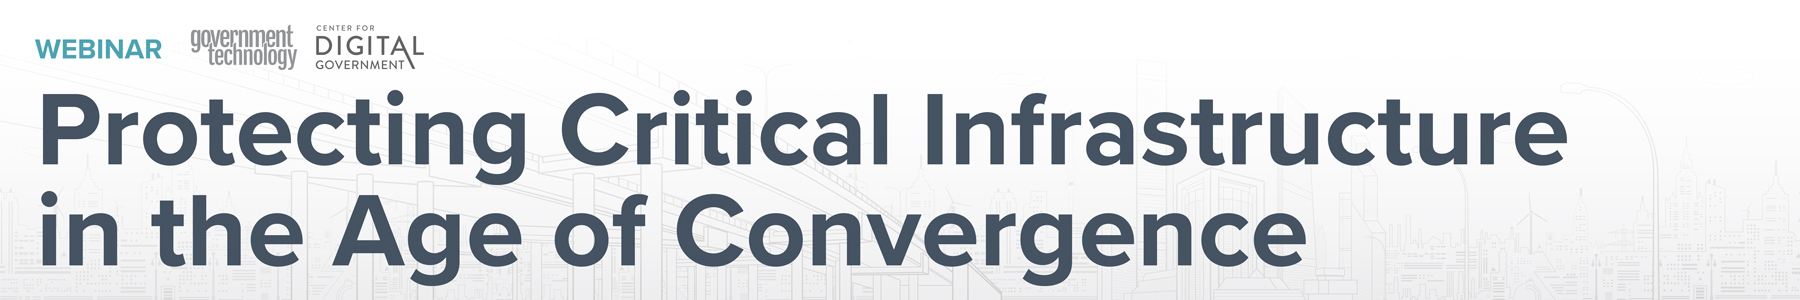 Protecting Critical Infrastructure in the Age of Convergence